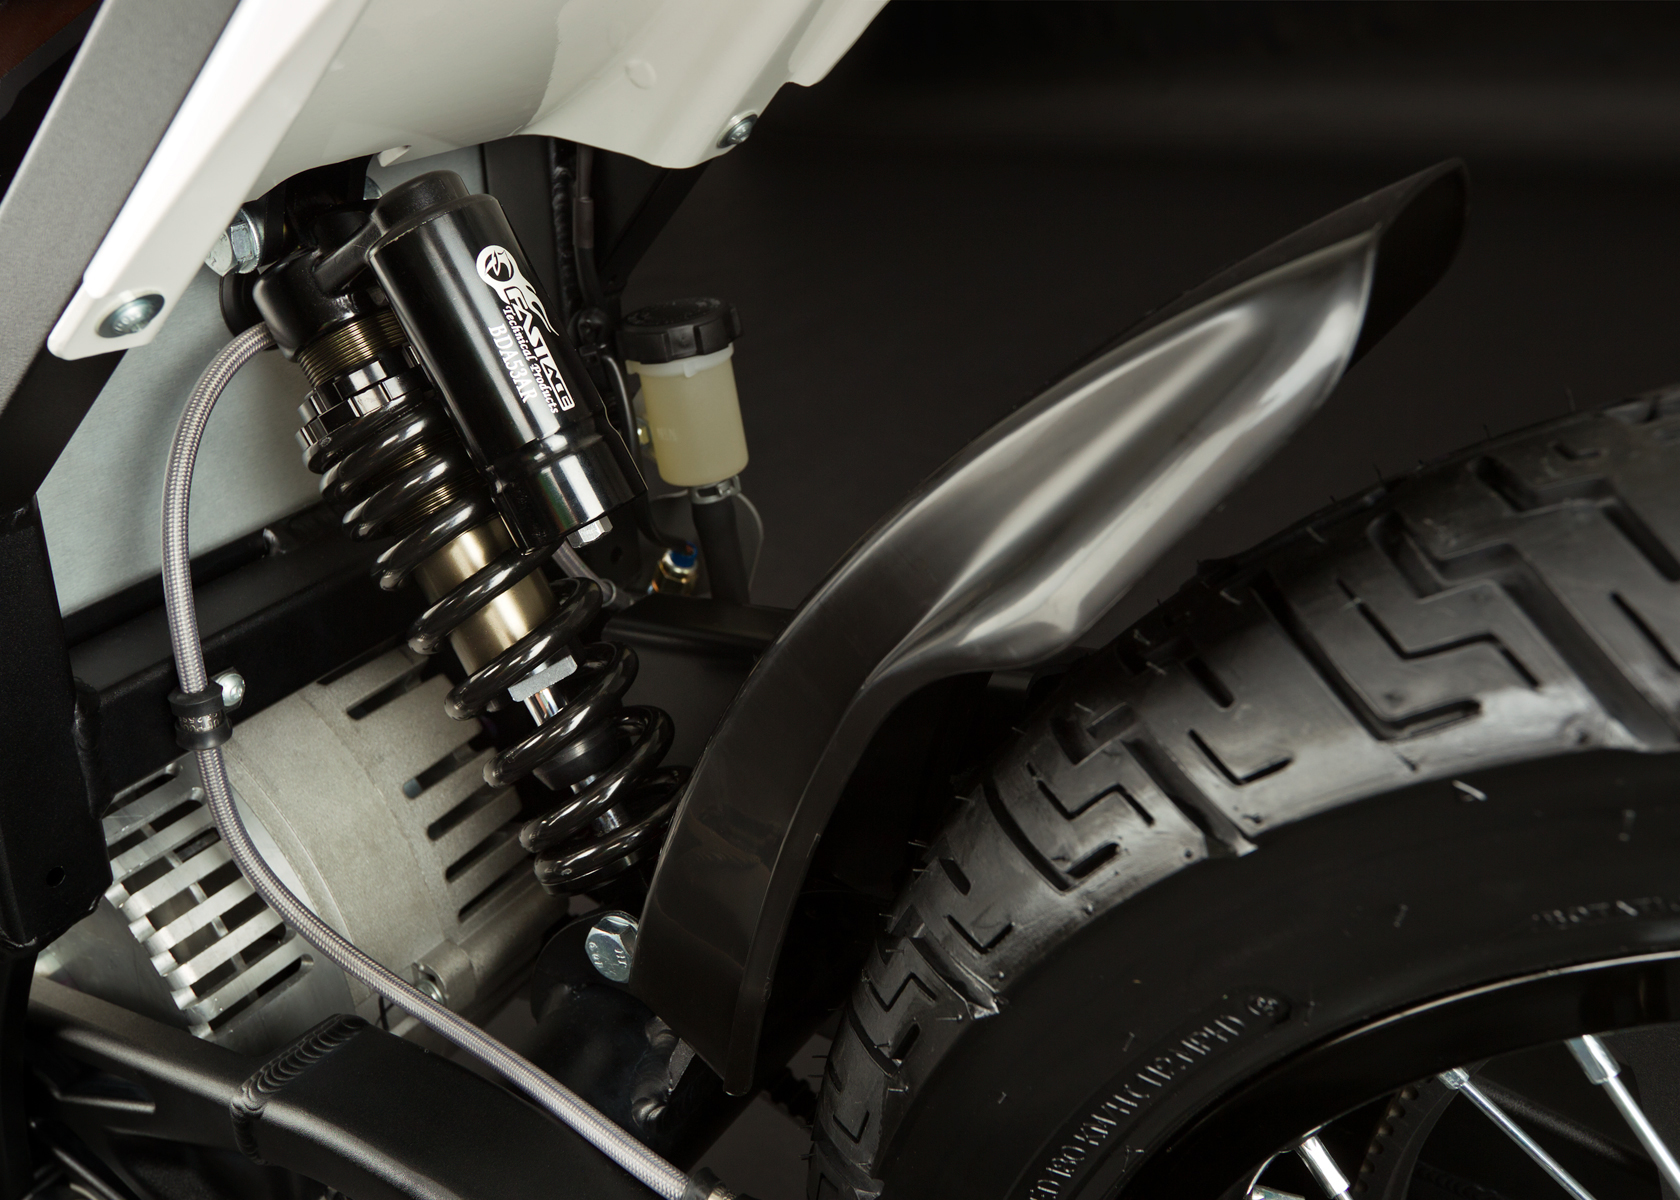 2012 Zero XU Electric Motorcycle: Rear Tire / Rear Shock